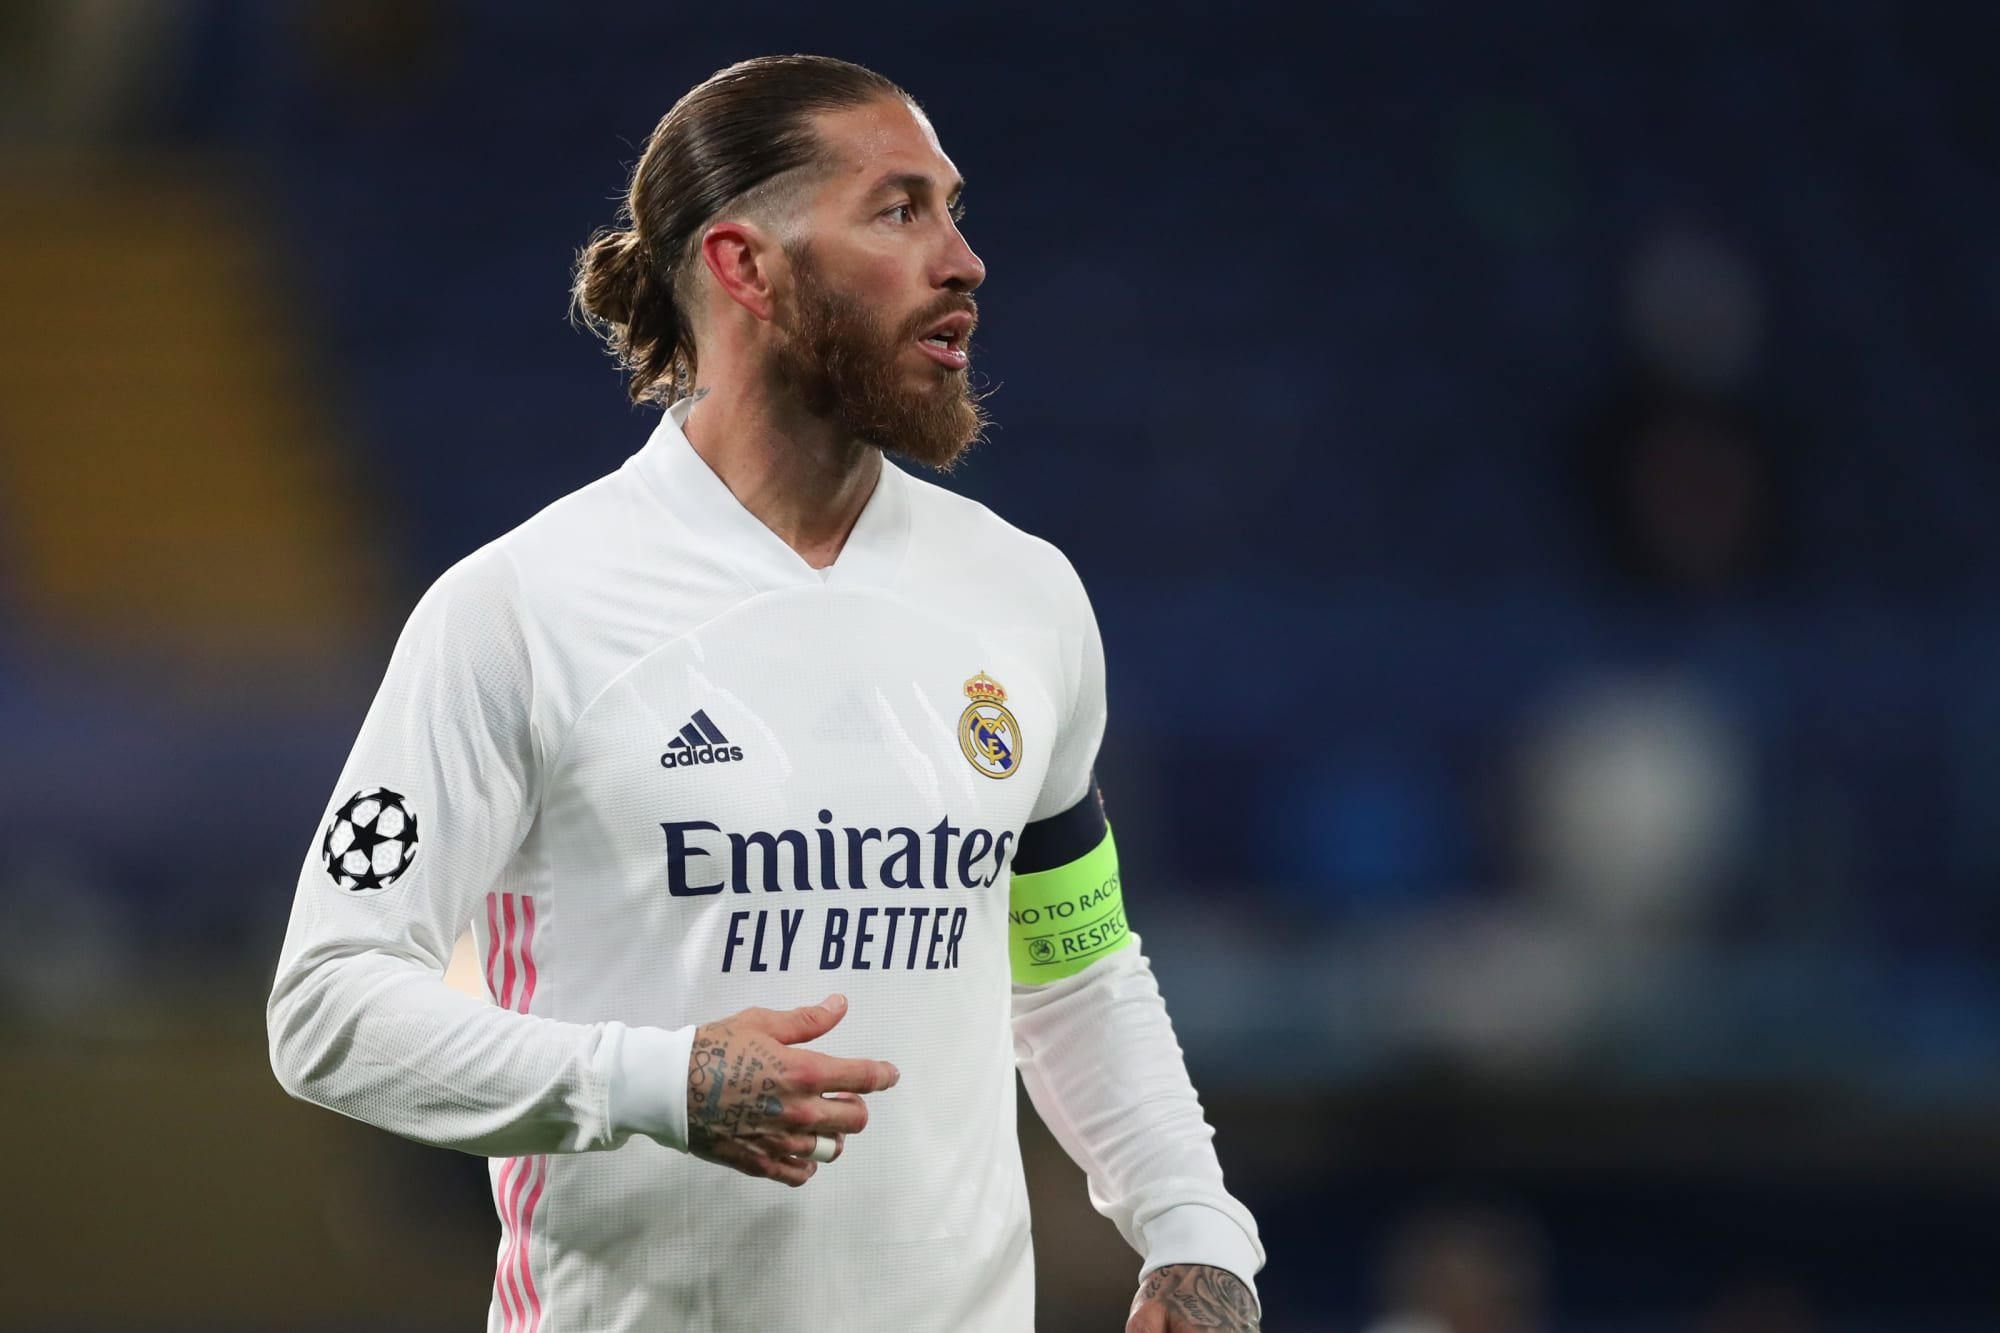 Sergio Ramos to leave Real Madrid after 16 trophy-laden years